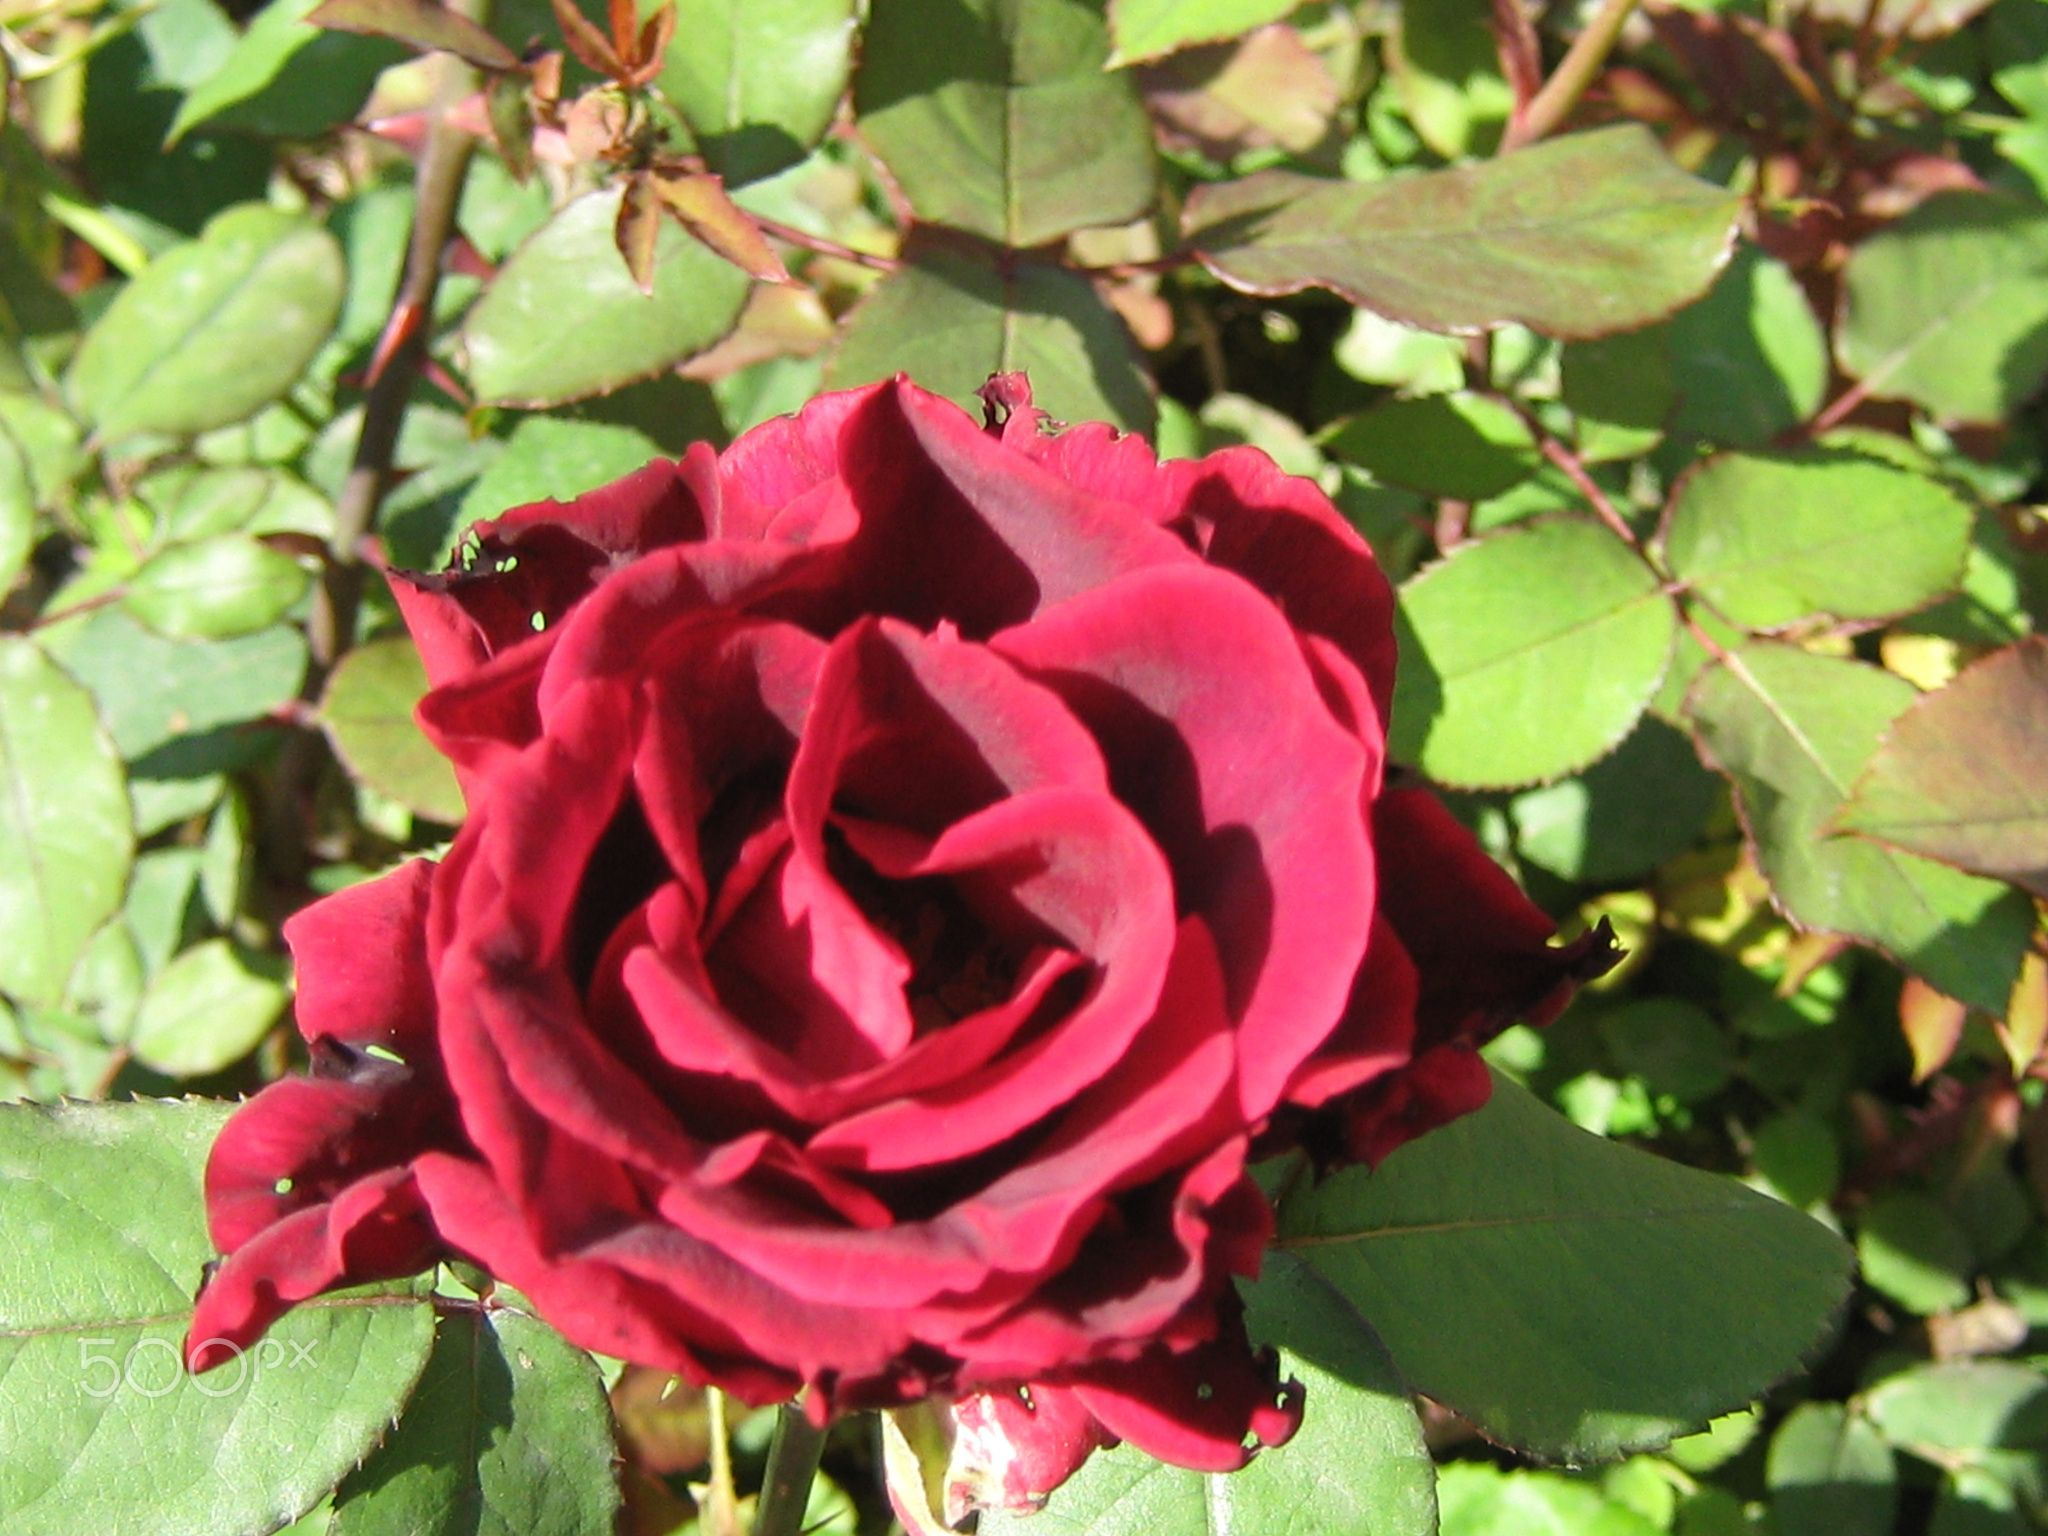 The red rose - The red rose